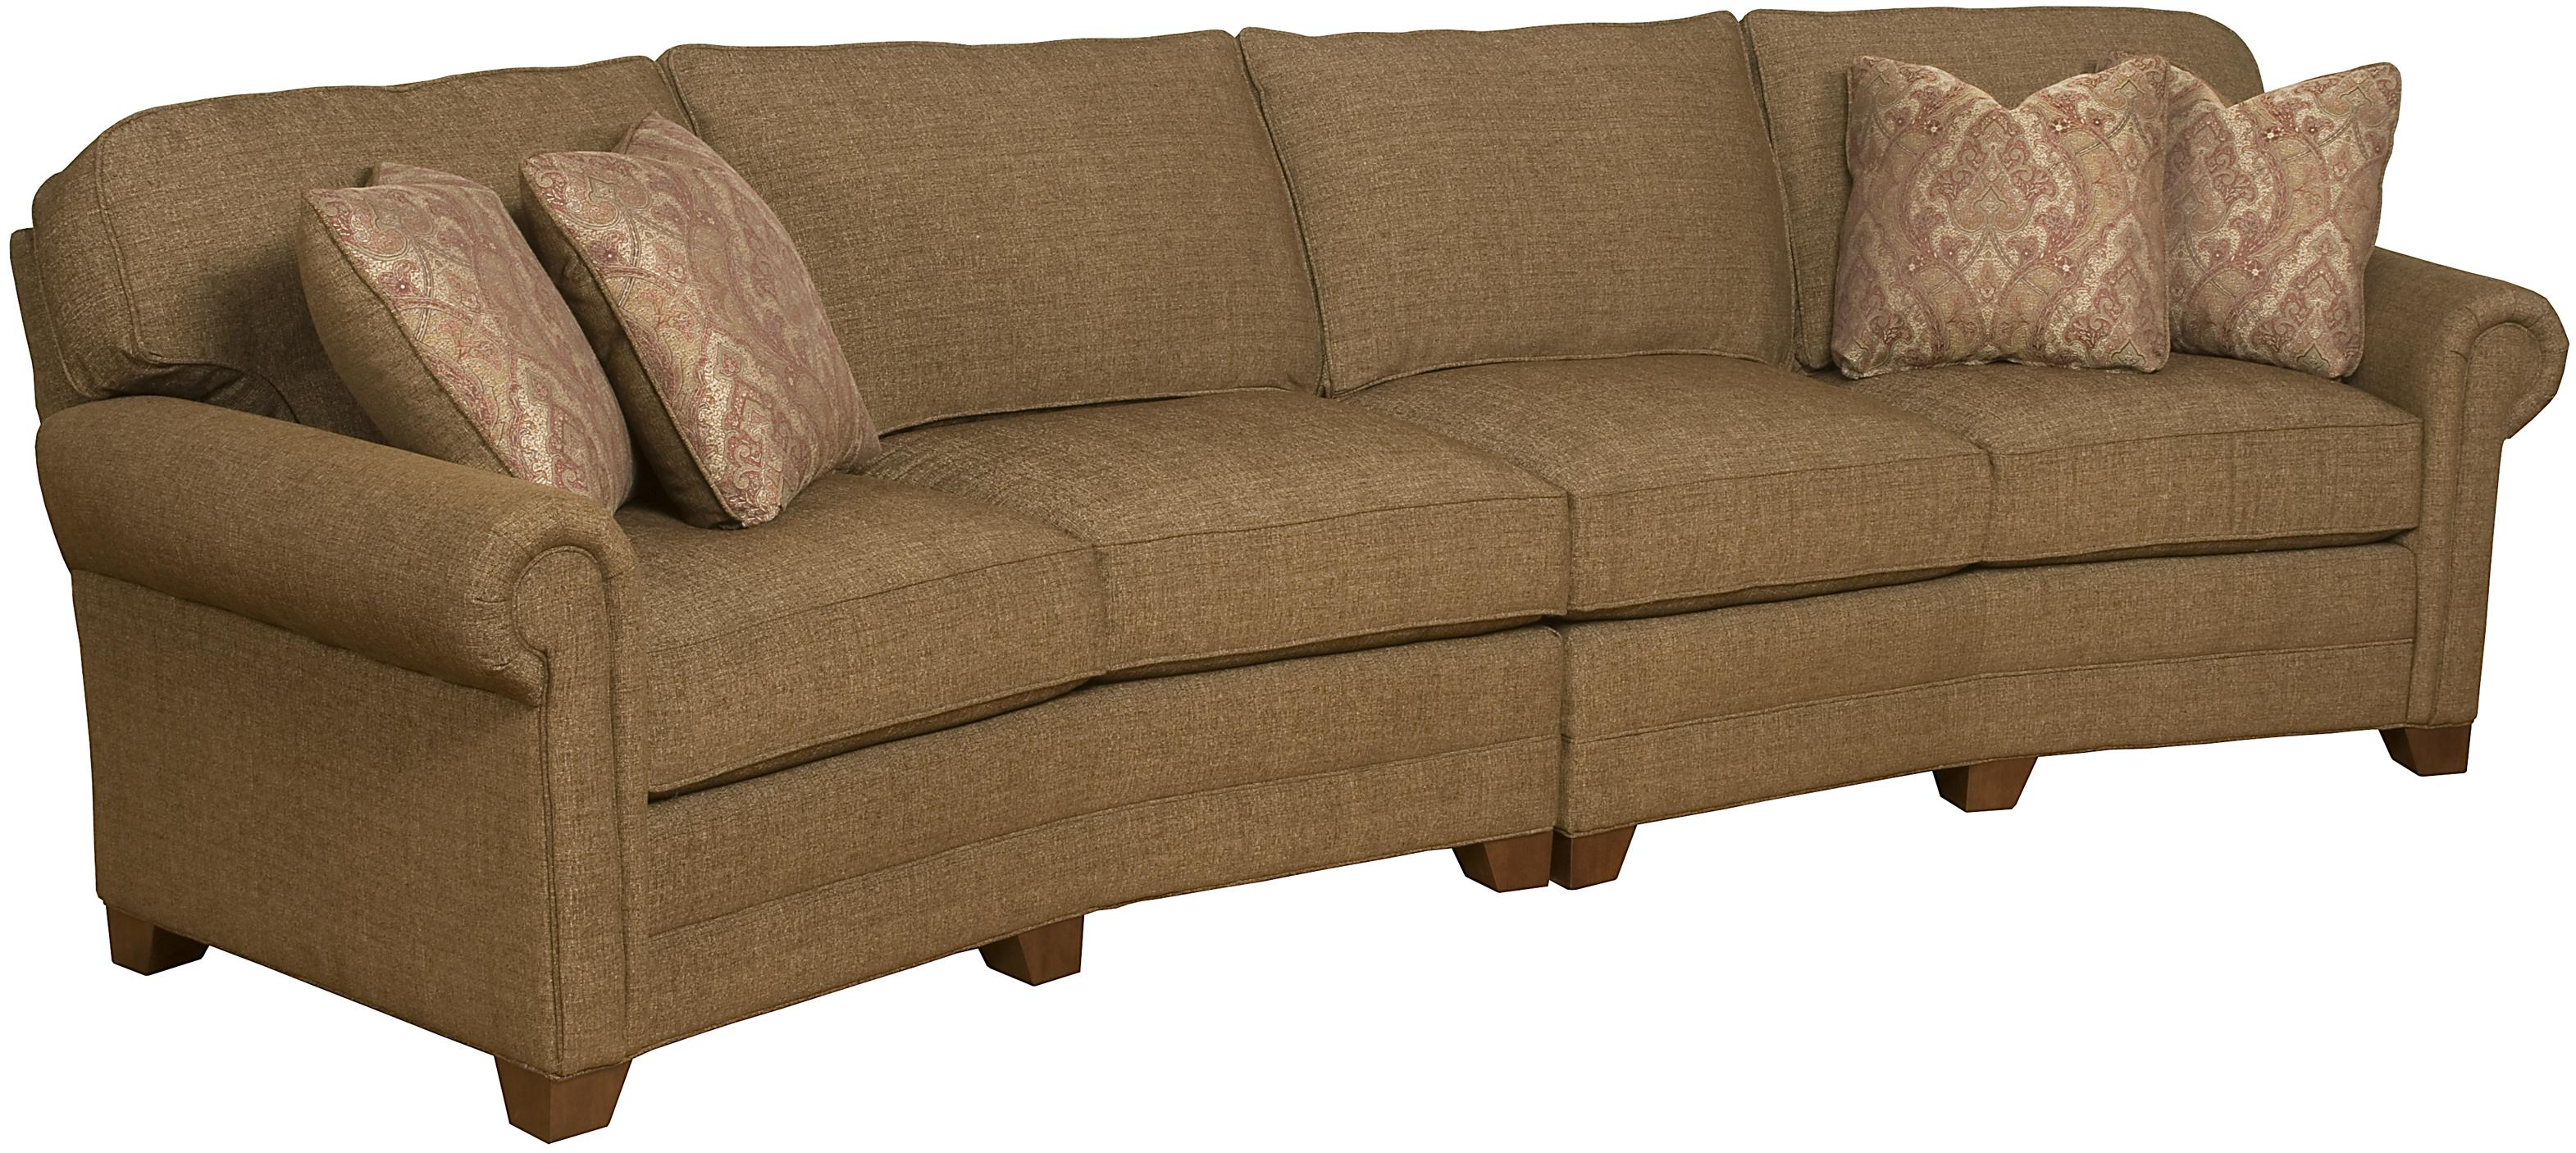 2 Piece Conversation Sofa with Exposed Wood Legs by King Hickory